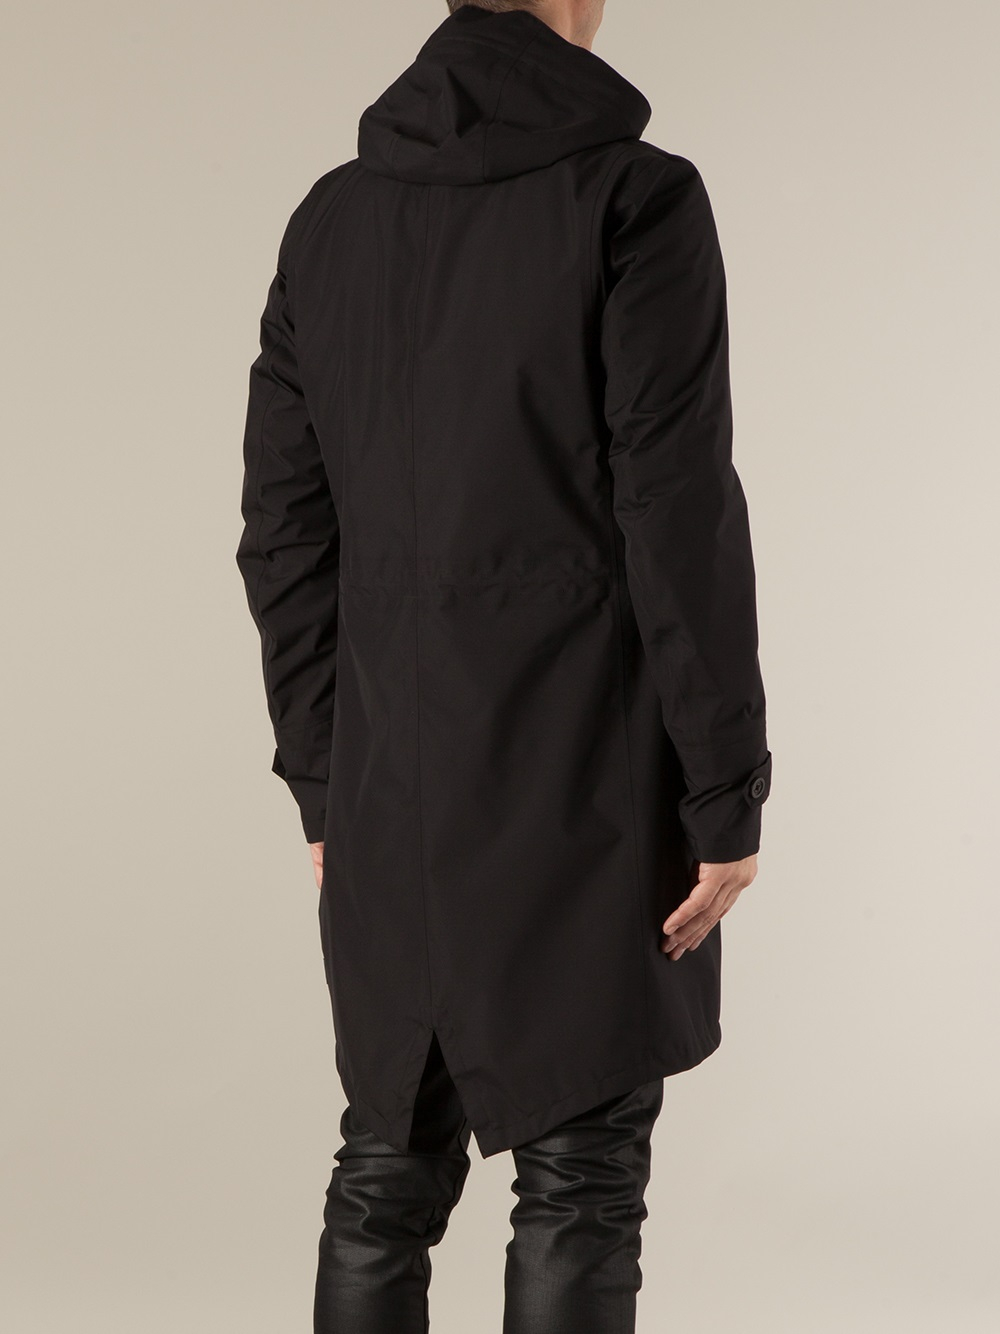 Lyst Herno Fishtail Parka In Black For Men